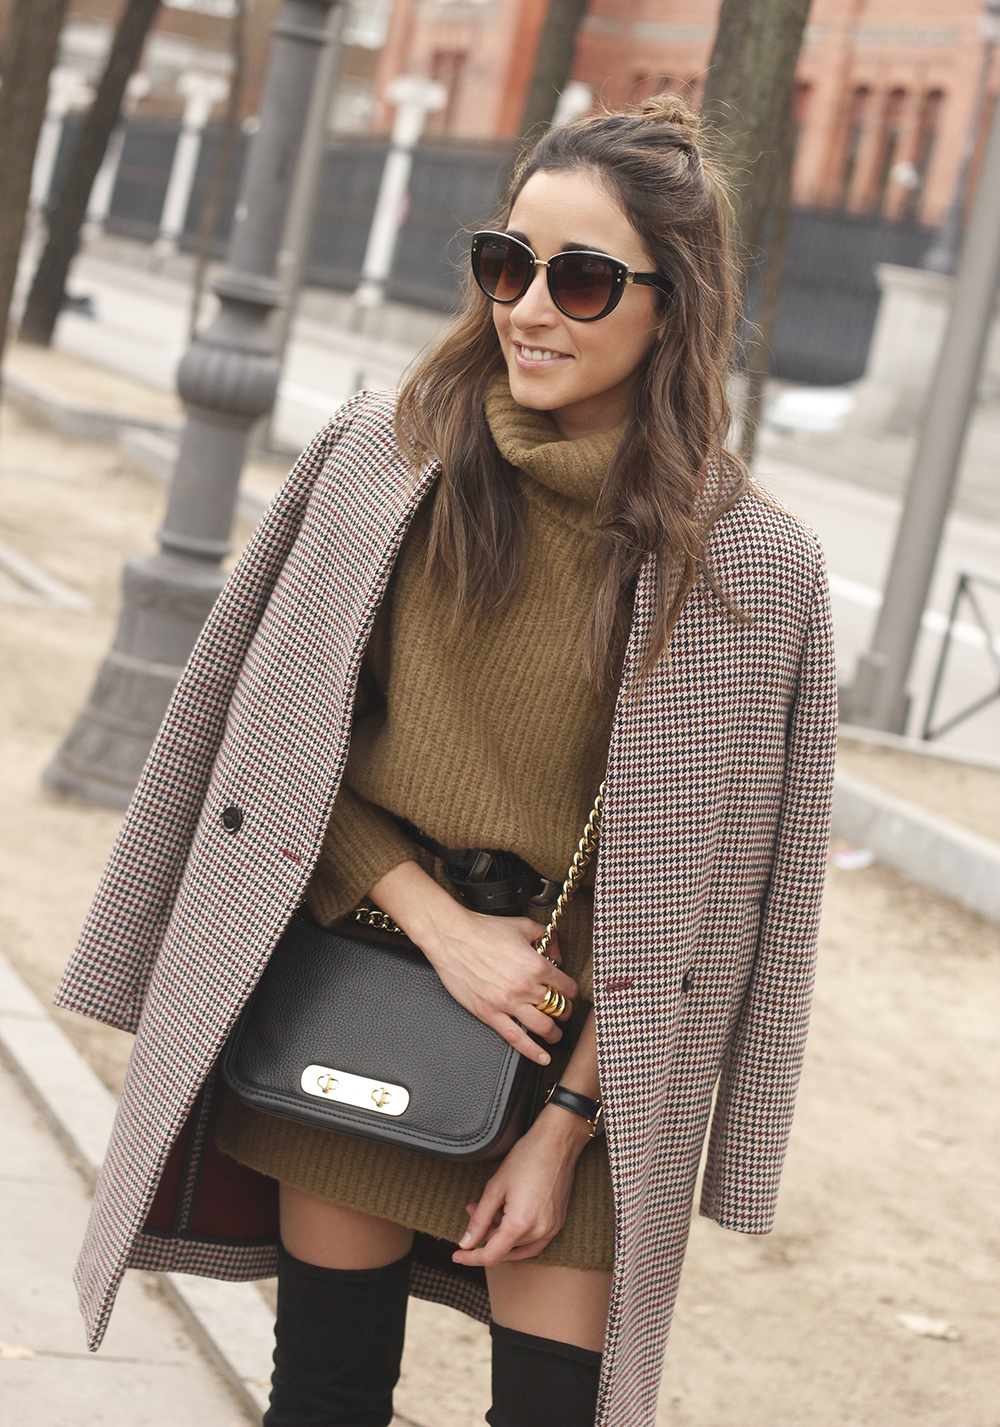 Turtleneck Dress over the knee boots coat sunnies coach bag style fashion outfit12